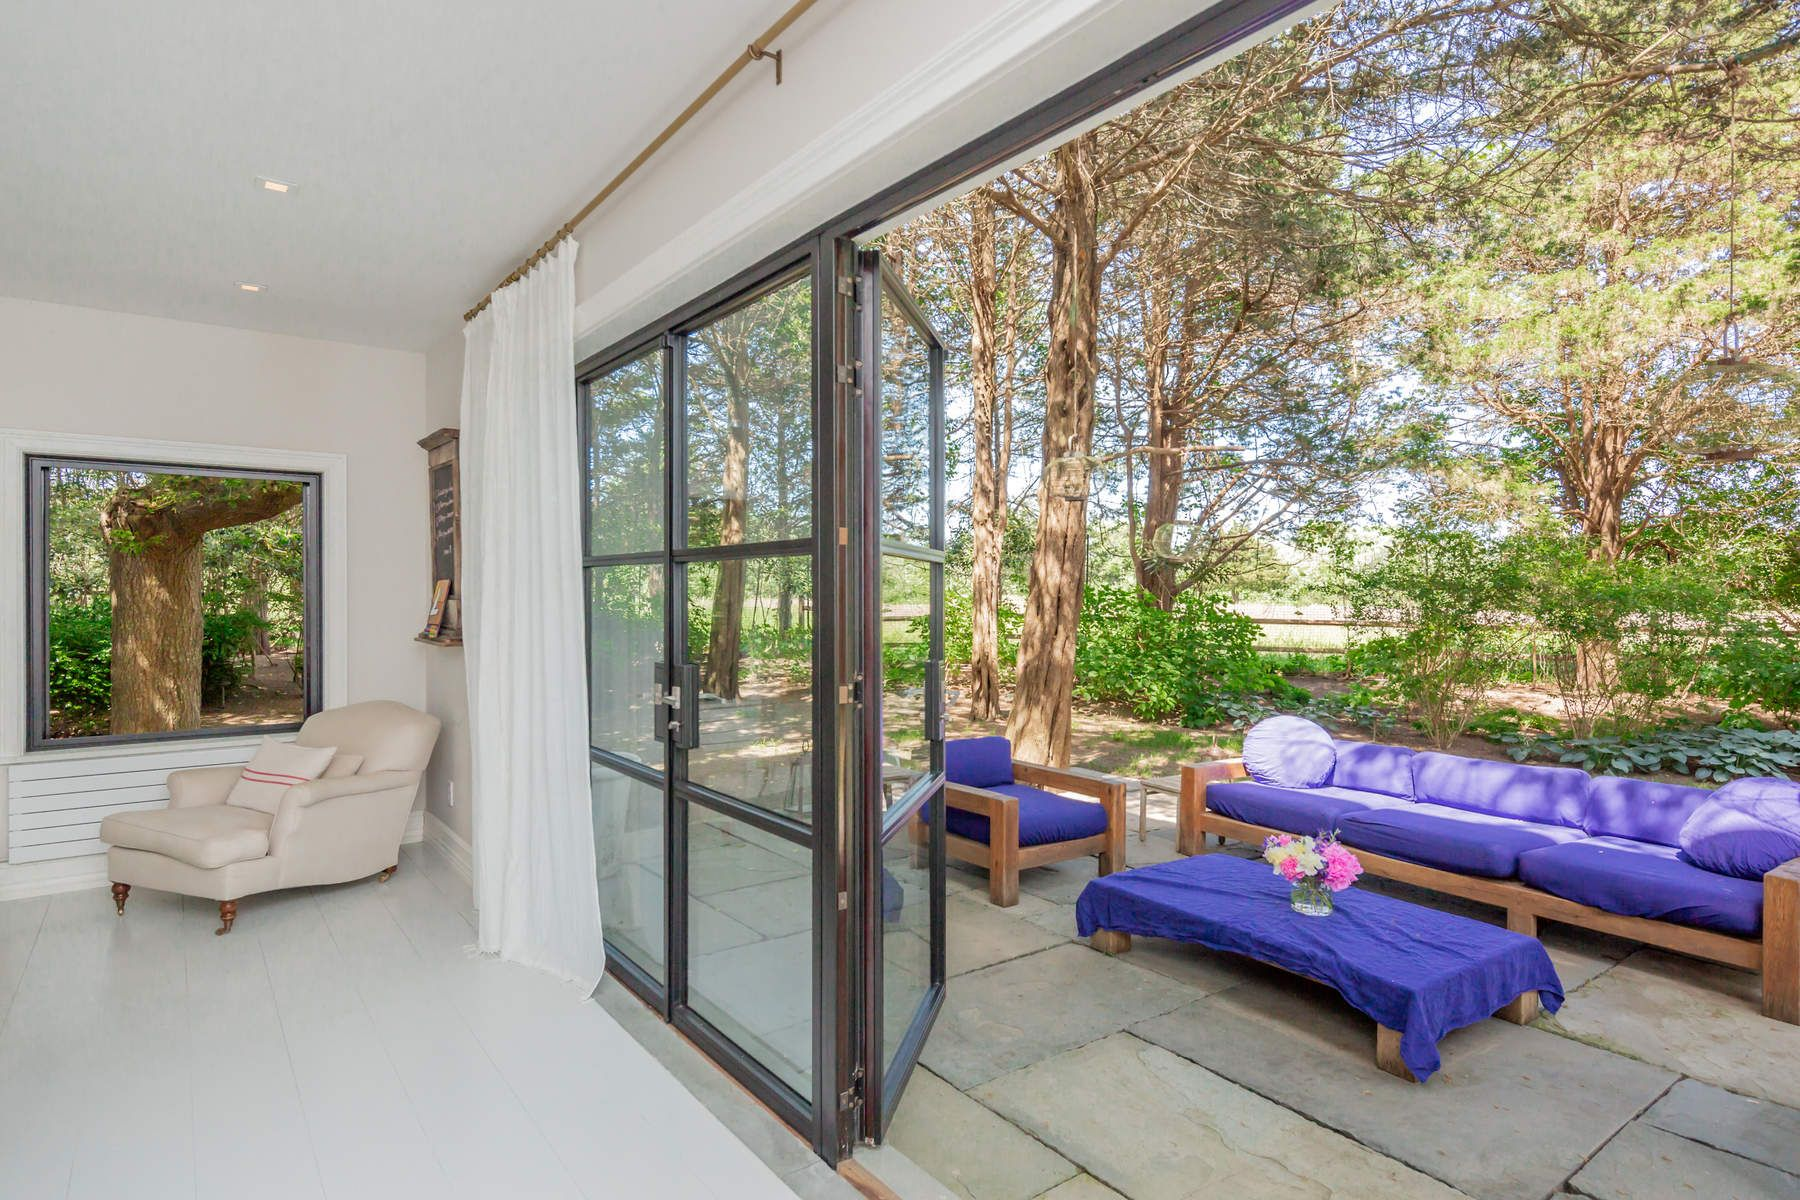 Single Family Home for Sale at Sophisticated And Private Stunner 154 Windmill Lane Amagansett, New York 11930 United States